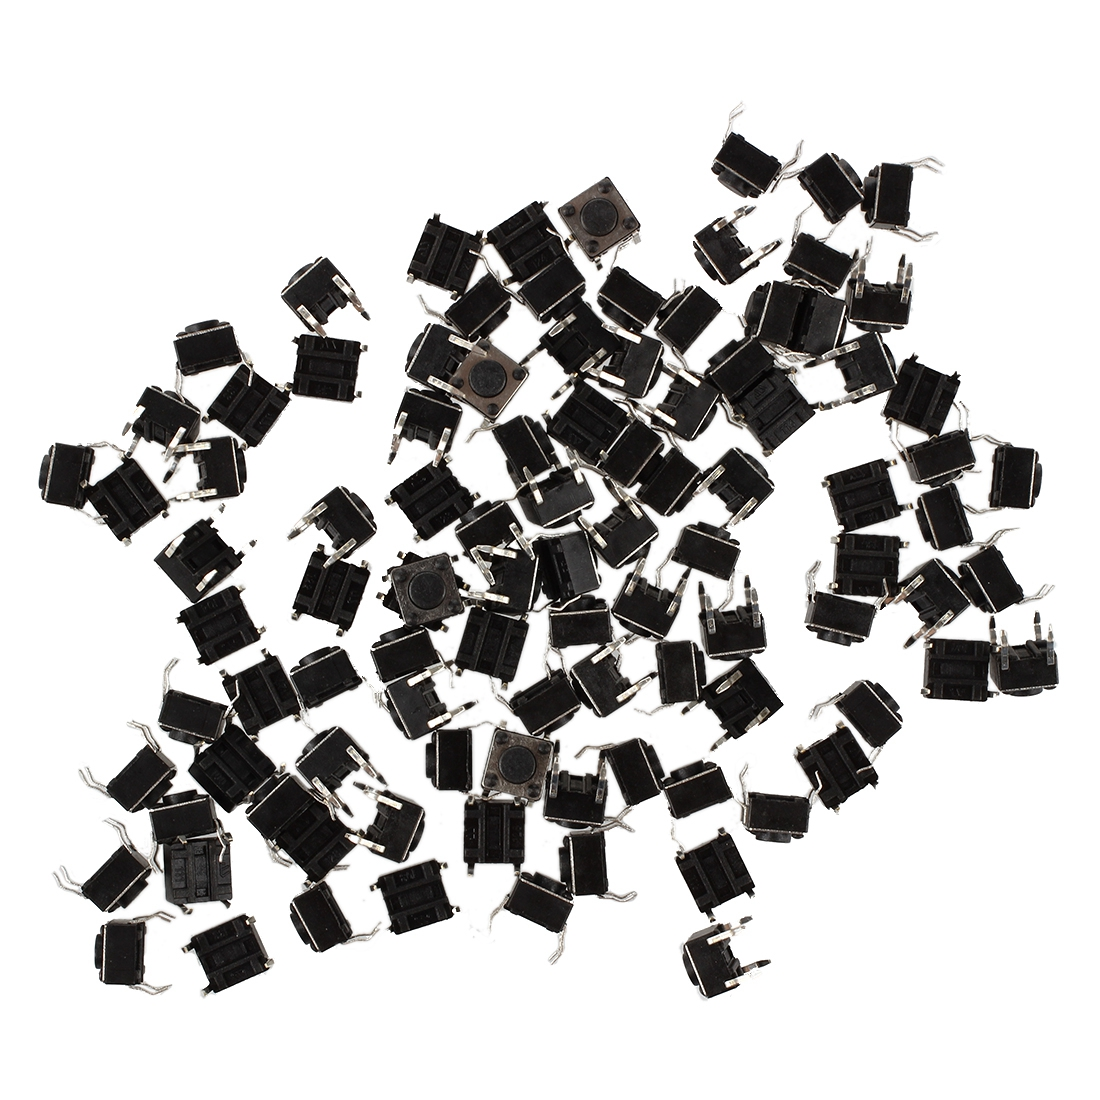 New 100 Pcs 6x6x4.5mm Panel PCB Momentary Tactile Tact Push Button Switch 4 Pin DIP